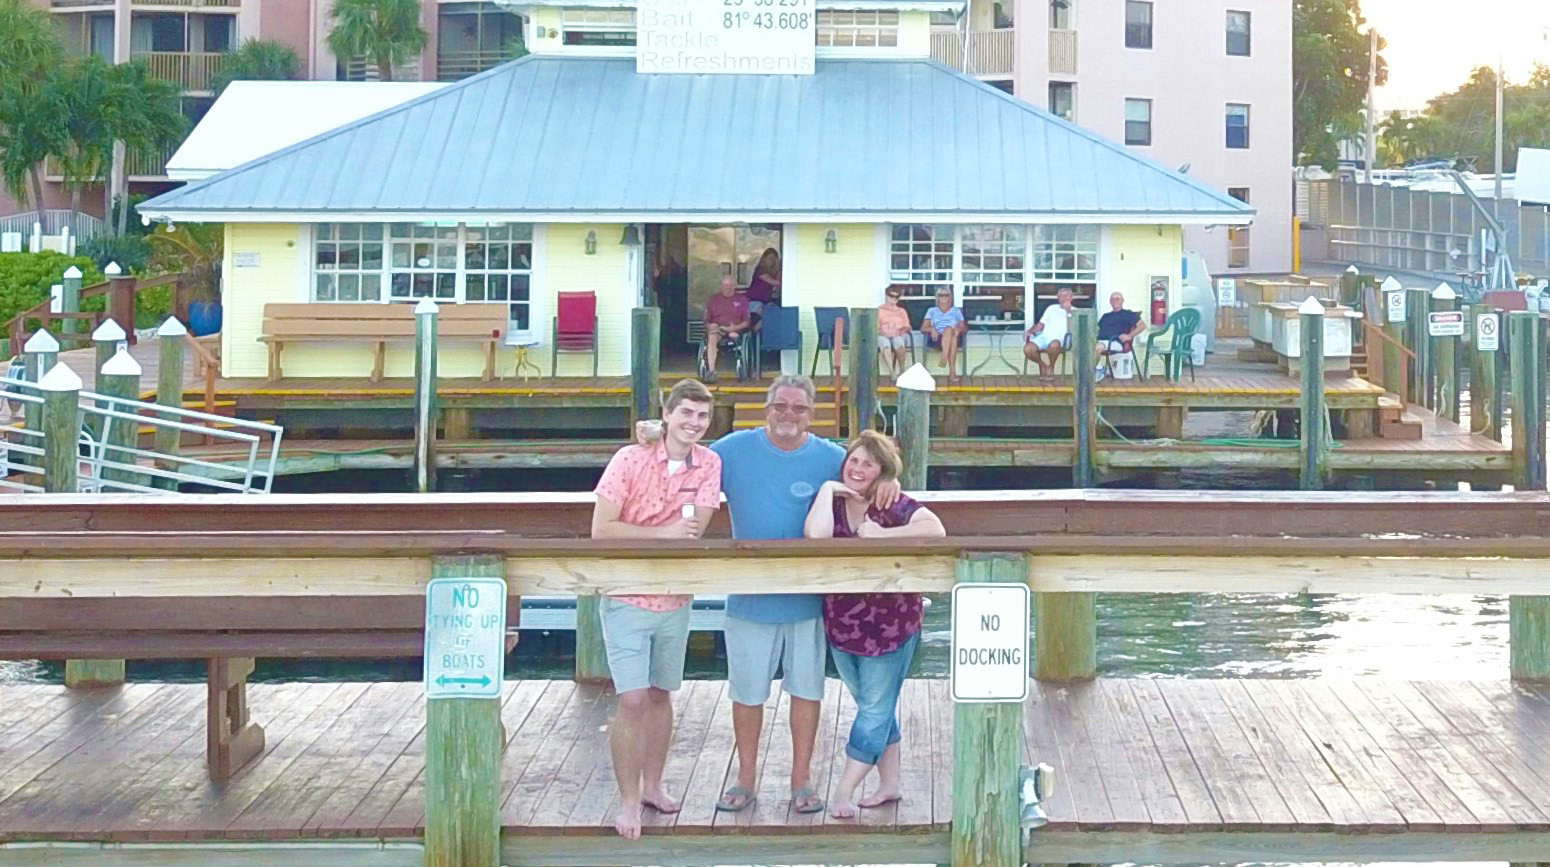 People of Pelican Pier